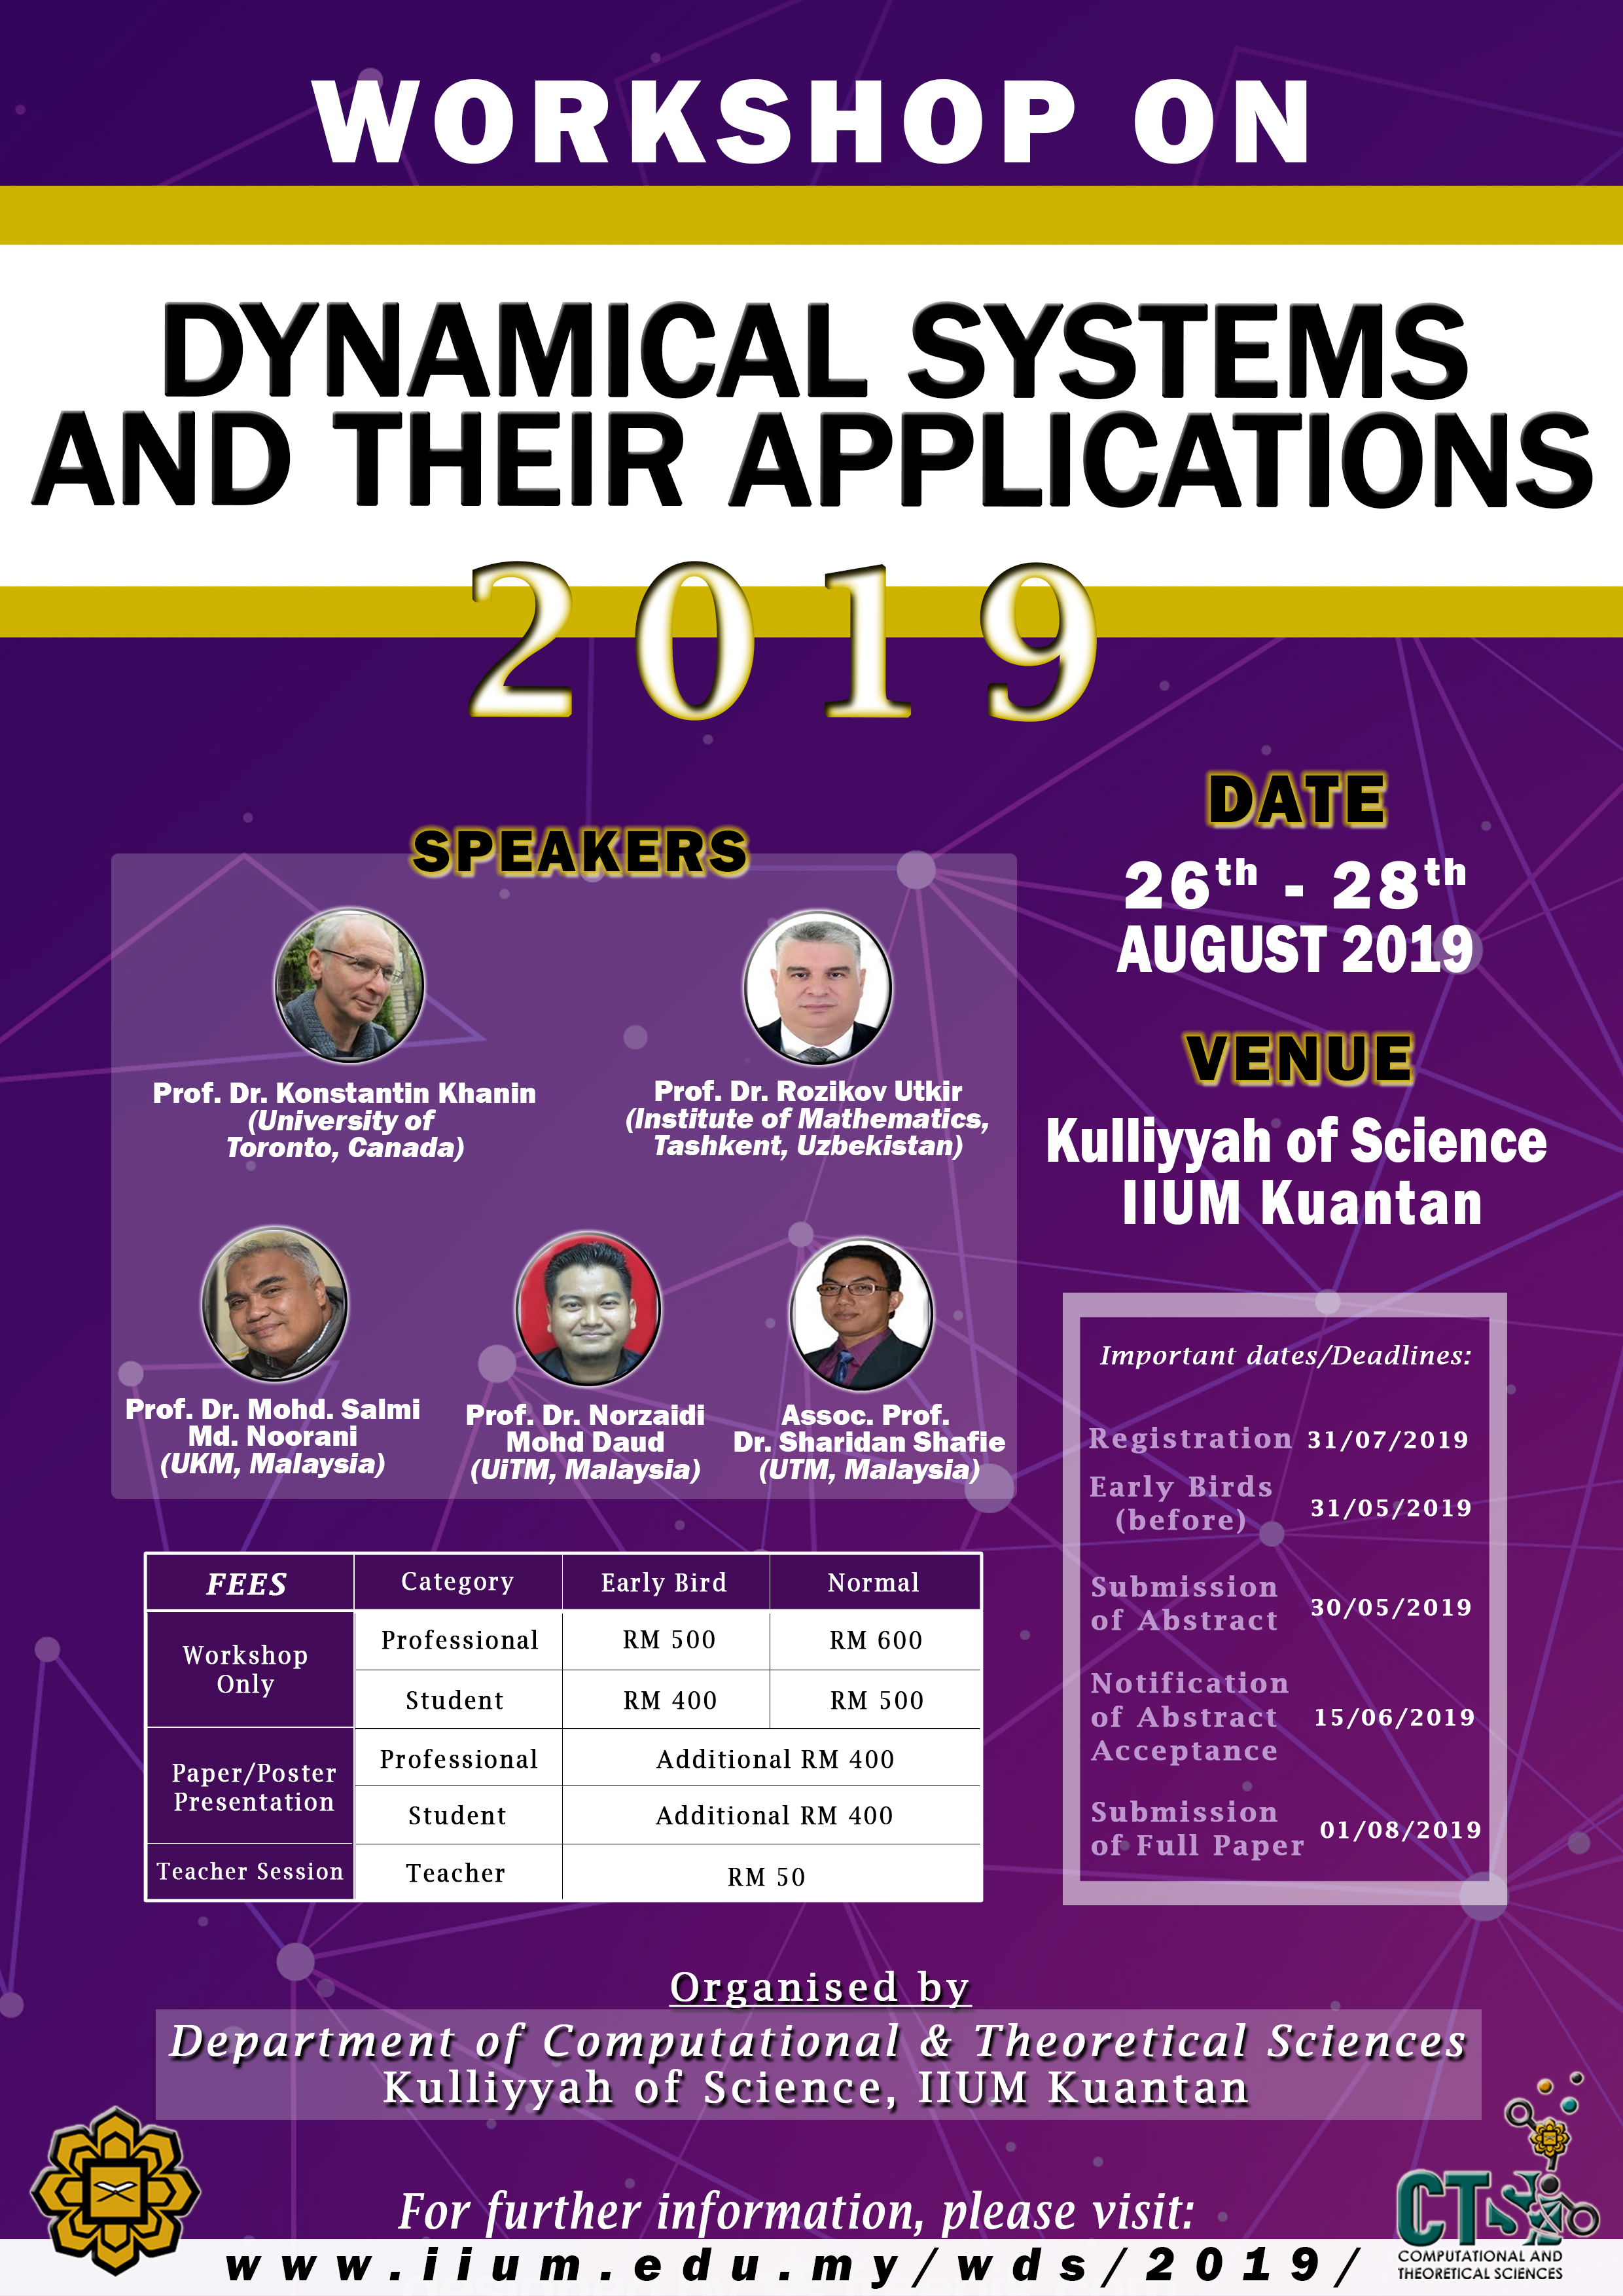 THE WORKSHOP ON DYNAMICAL SYSTEMS AND THEIR APPLICATIONS 2019 (WDS 2019)